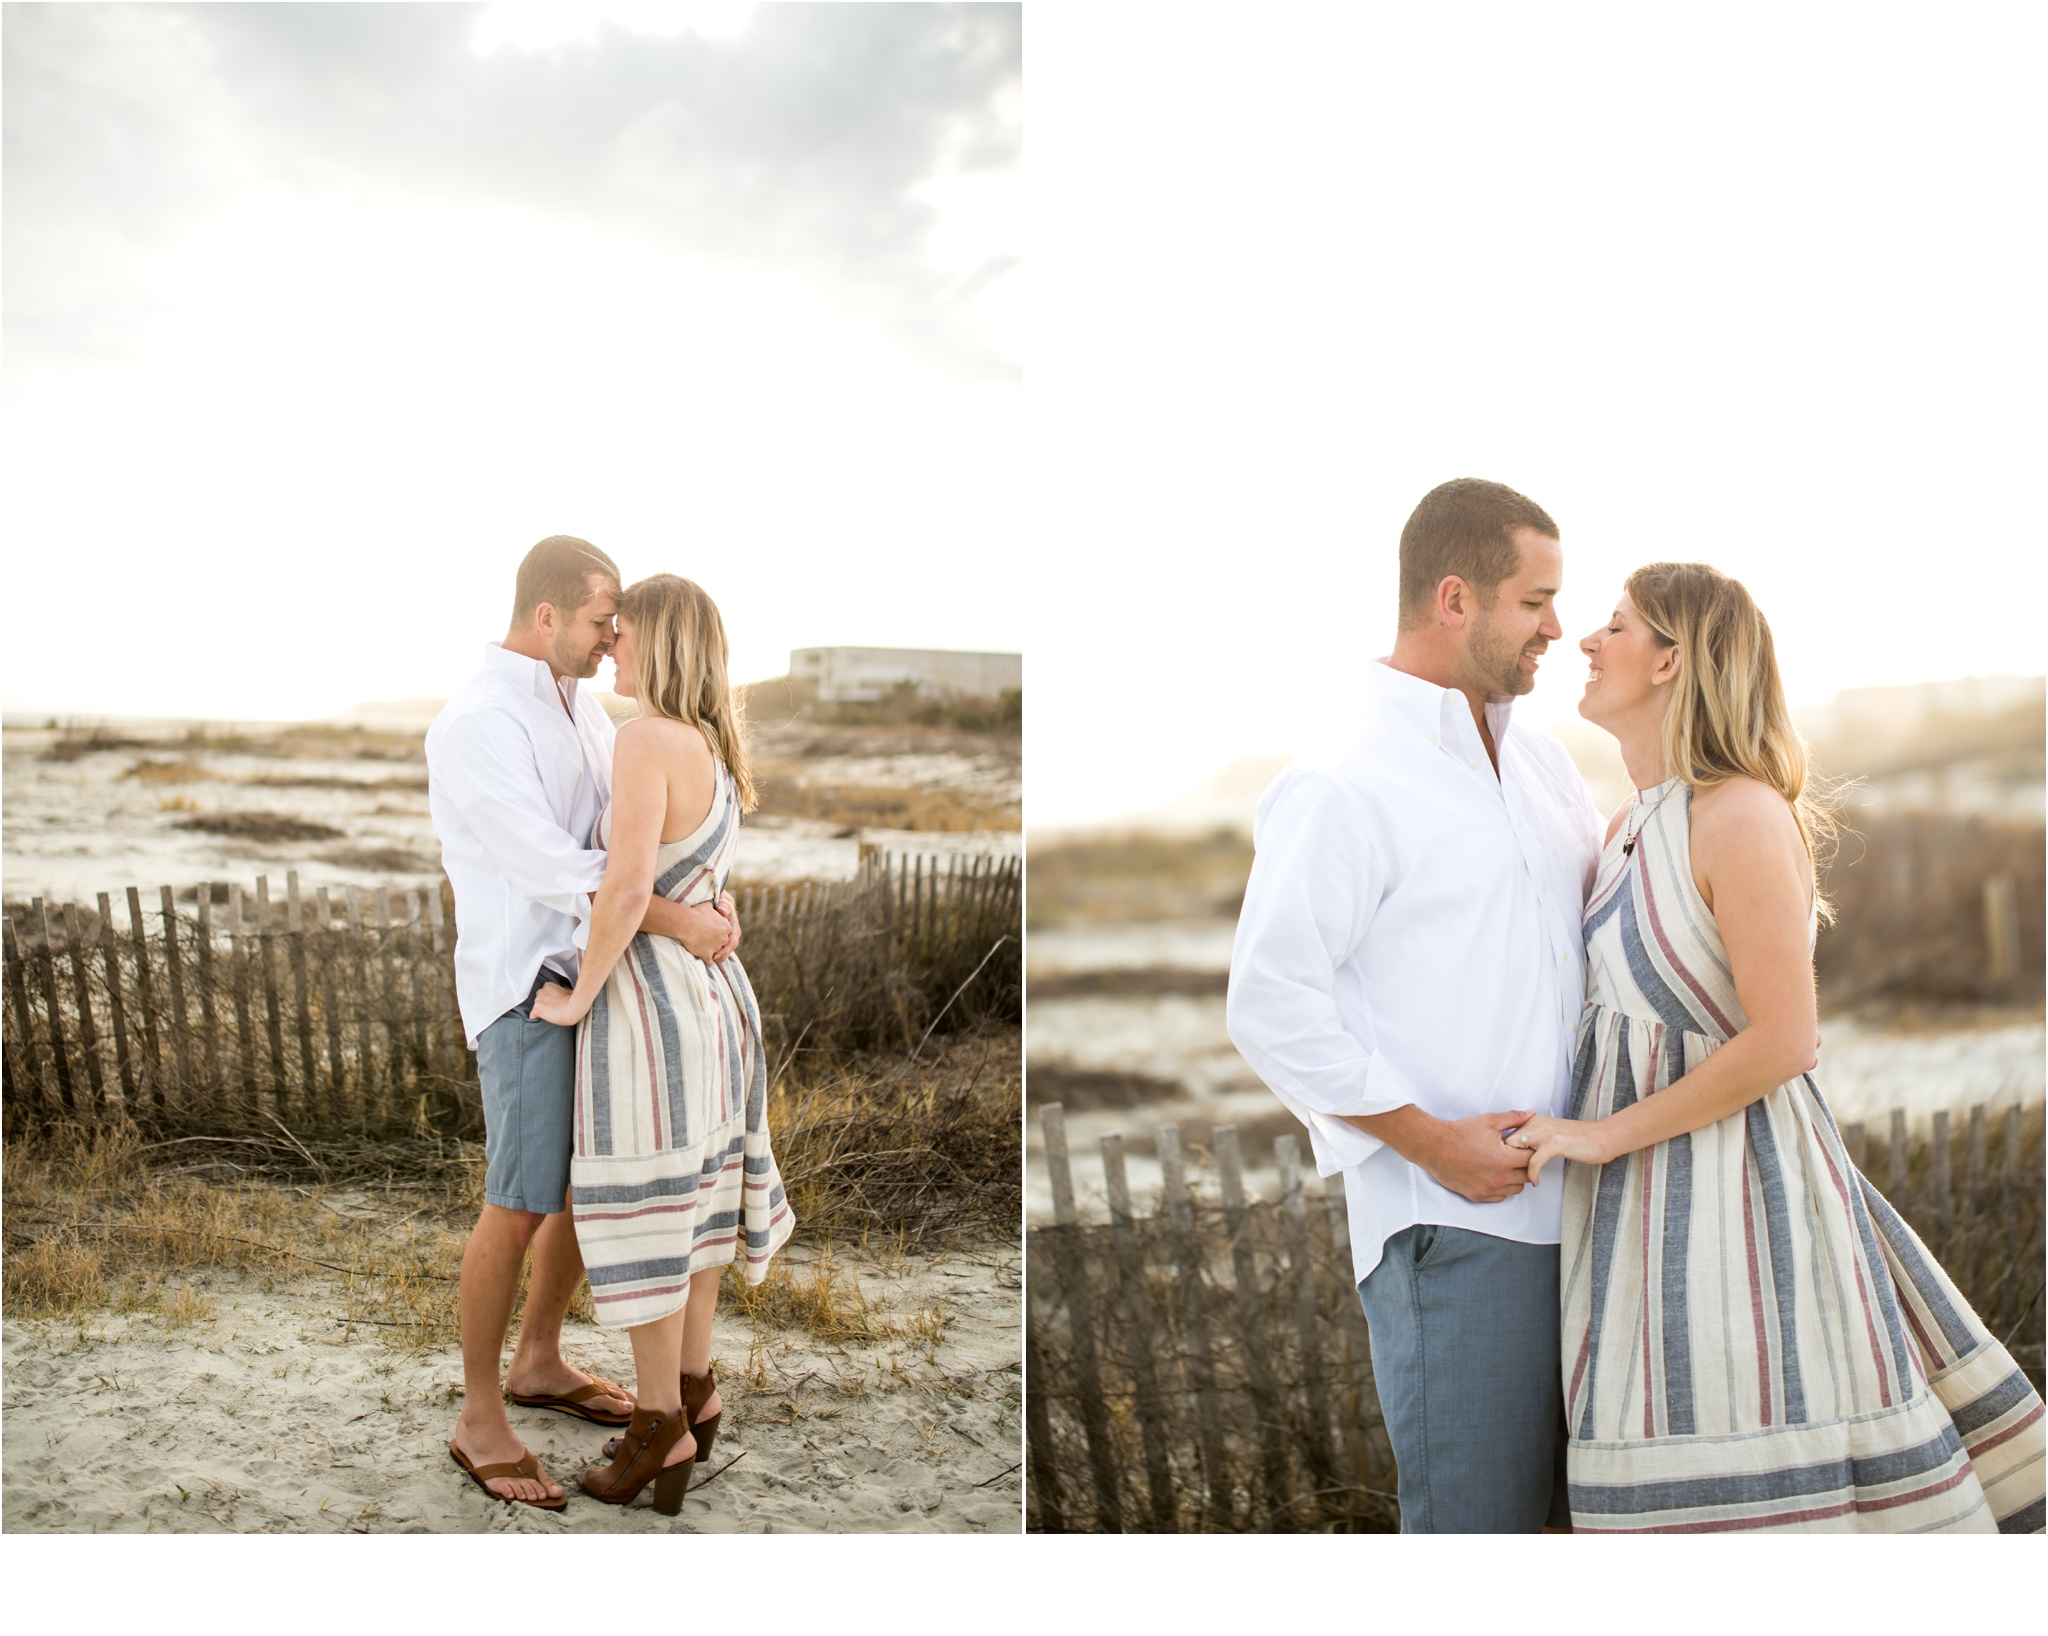 Rainey_Gregg_Photography_St._Simons_Island_Georgia_California_Wedding_Portrait_Photography_0556.jpg